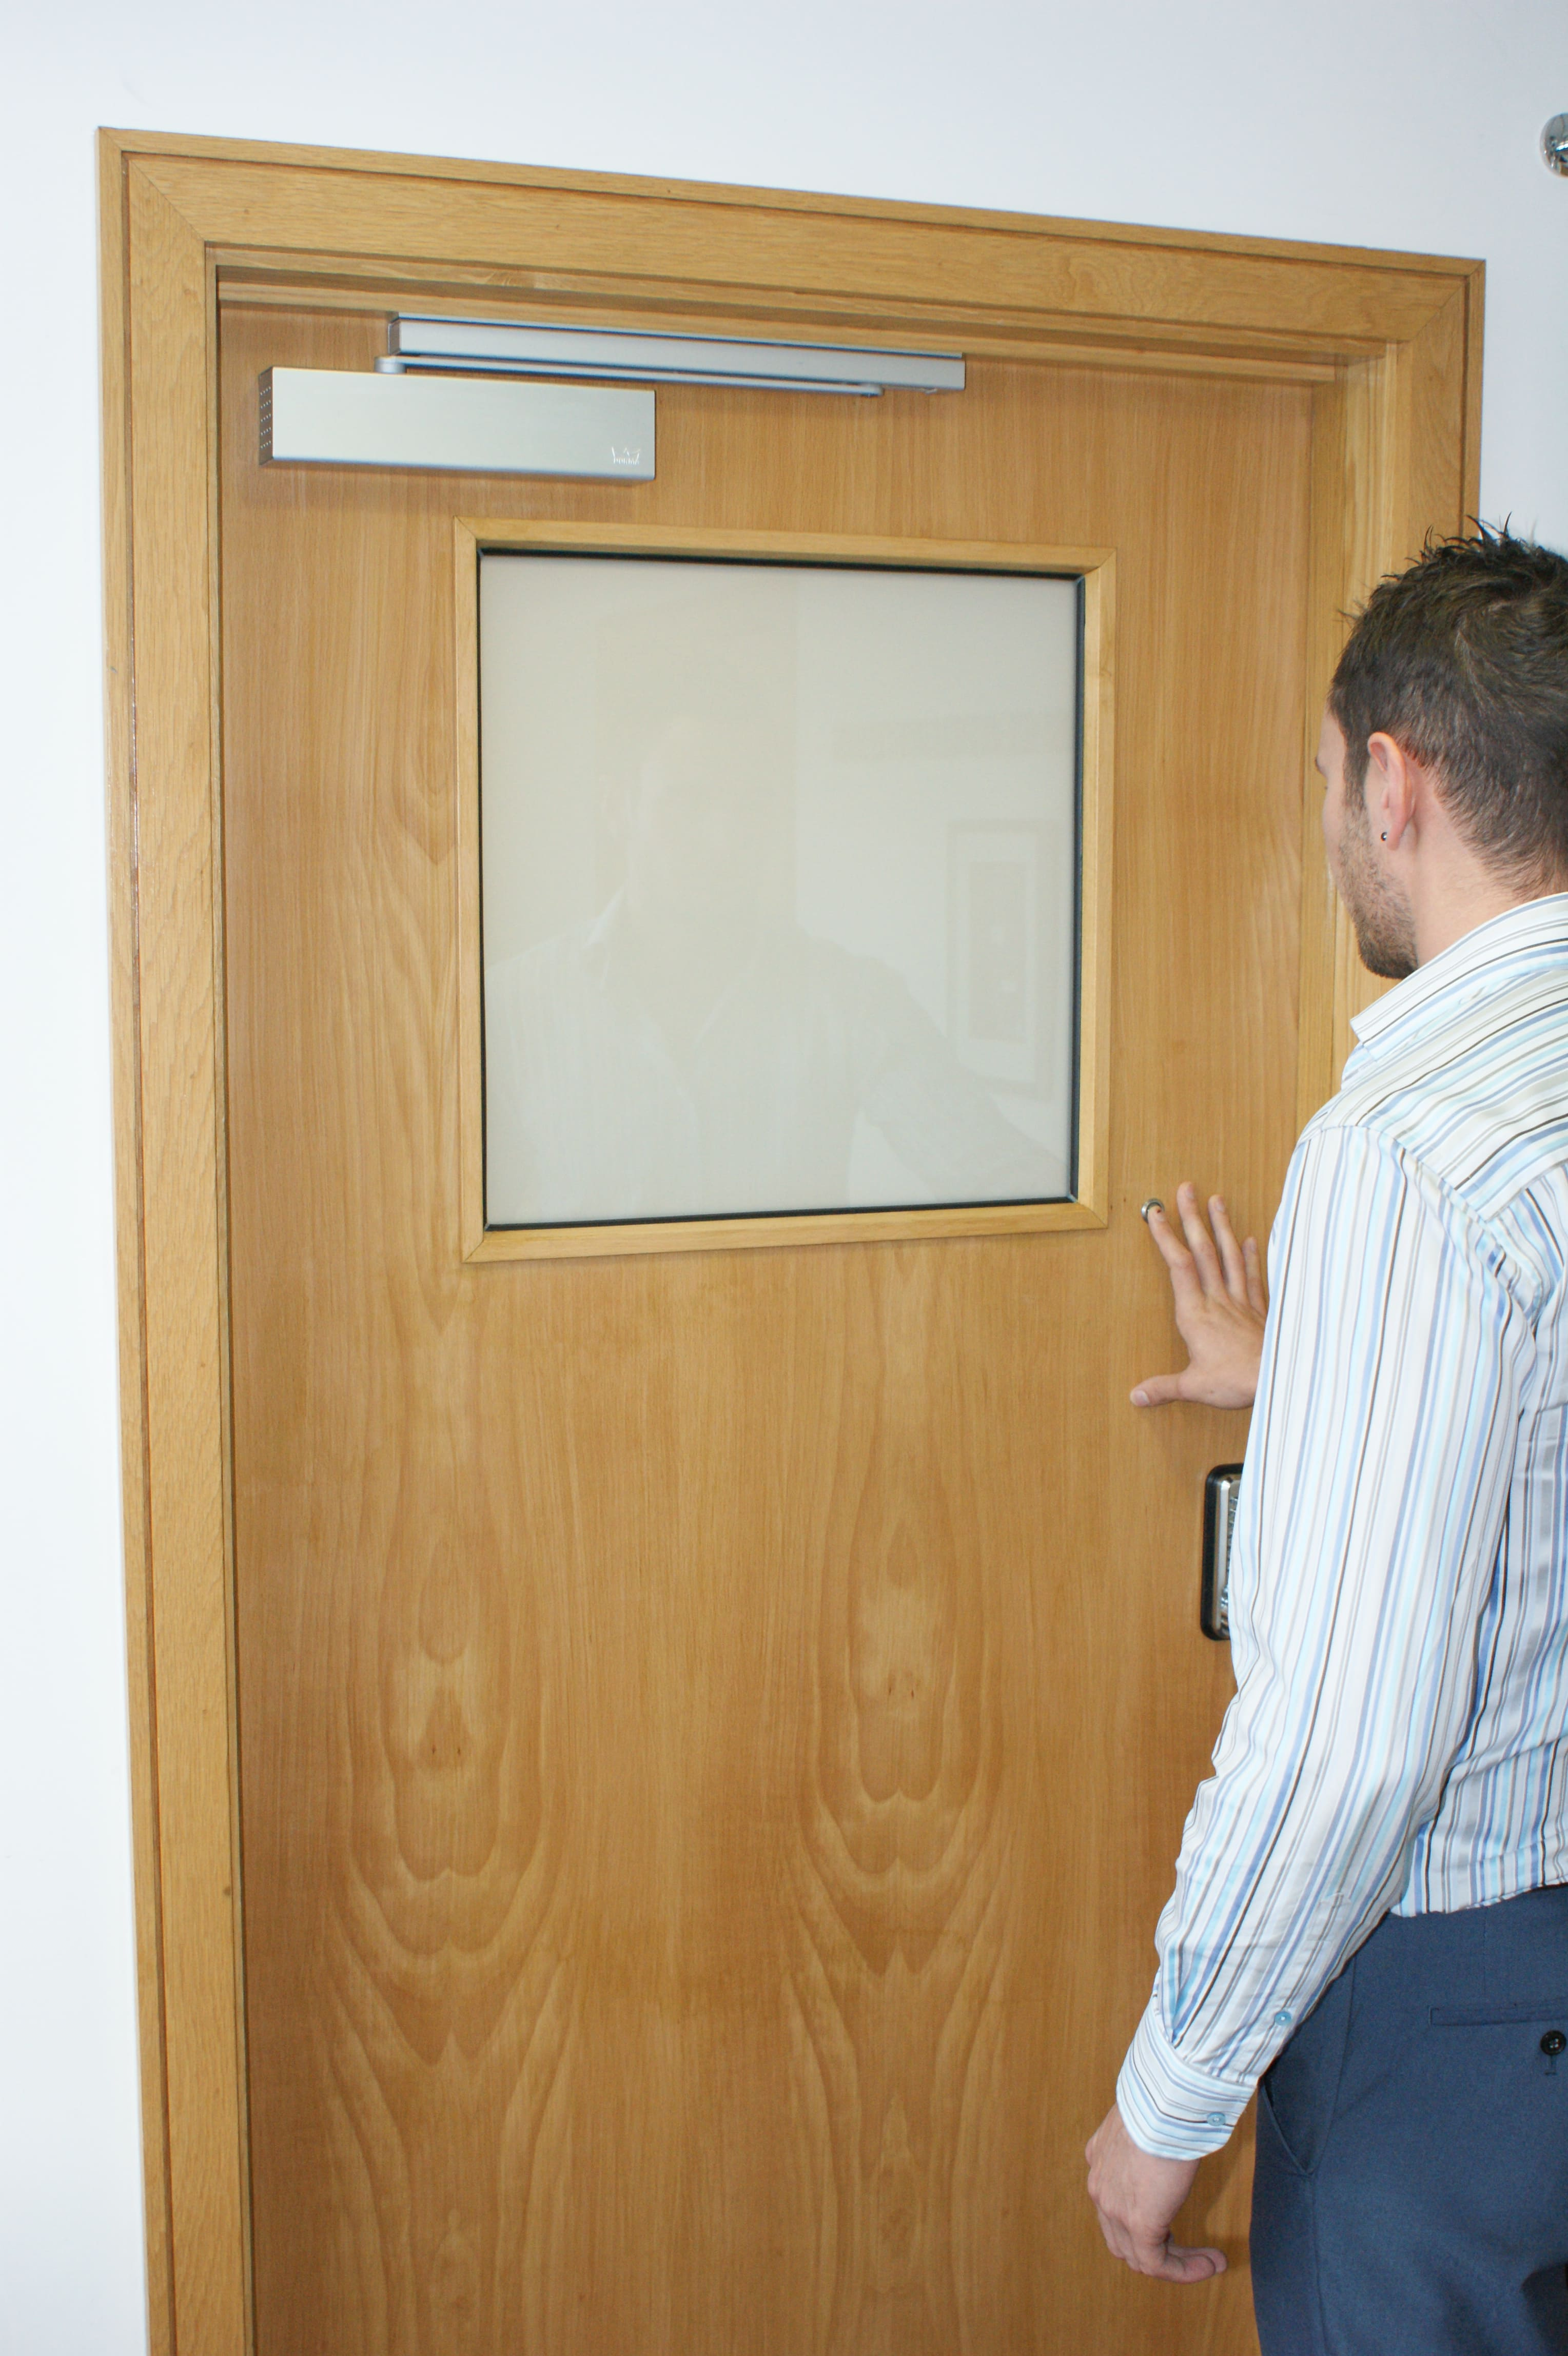 Vision Panel Door : vision, panel, Switchable, Smart, Glass, Panels, Intelligent